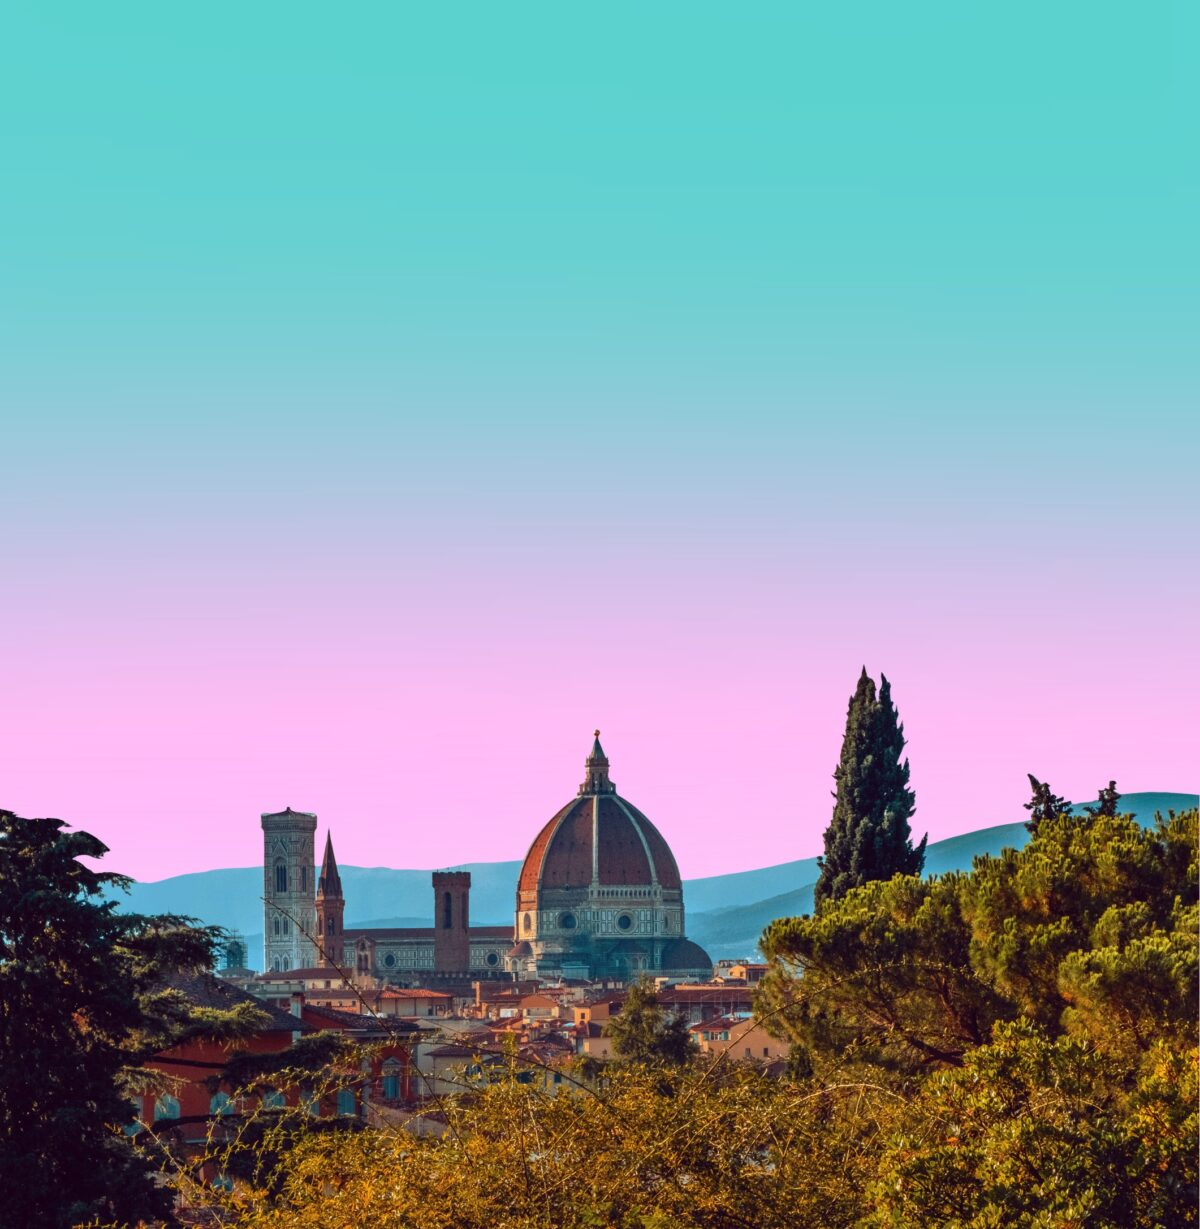 Breathtaking Gradient Landscape of The Duomo in Florence